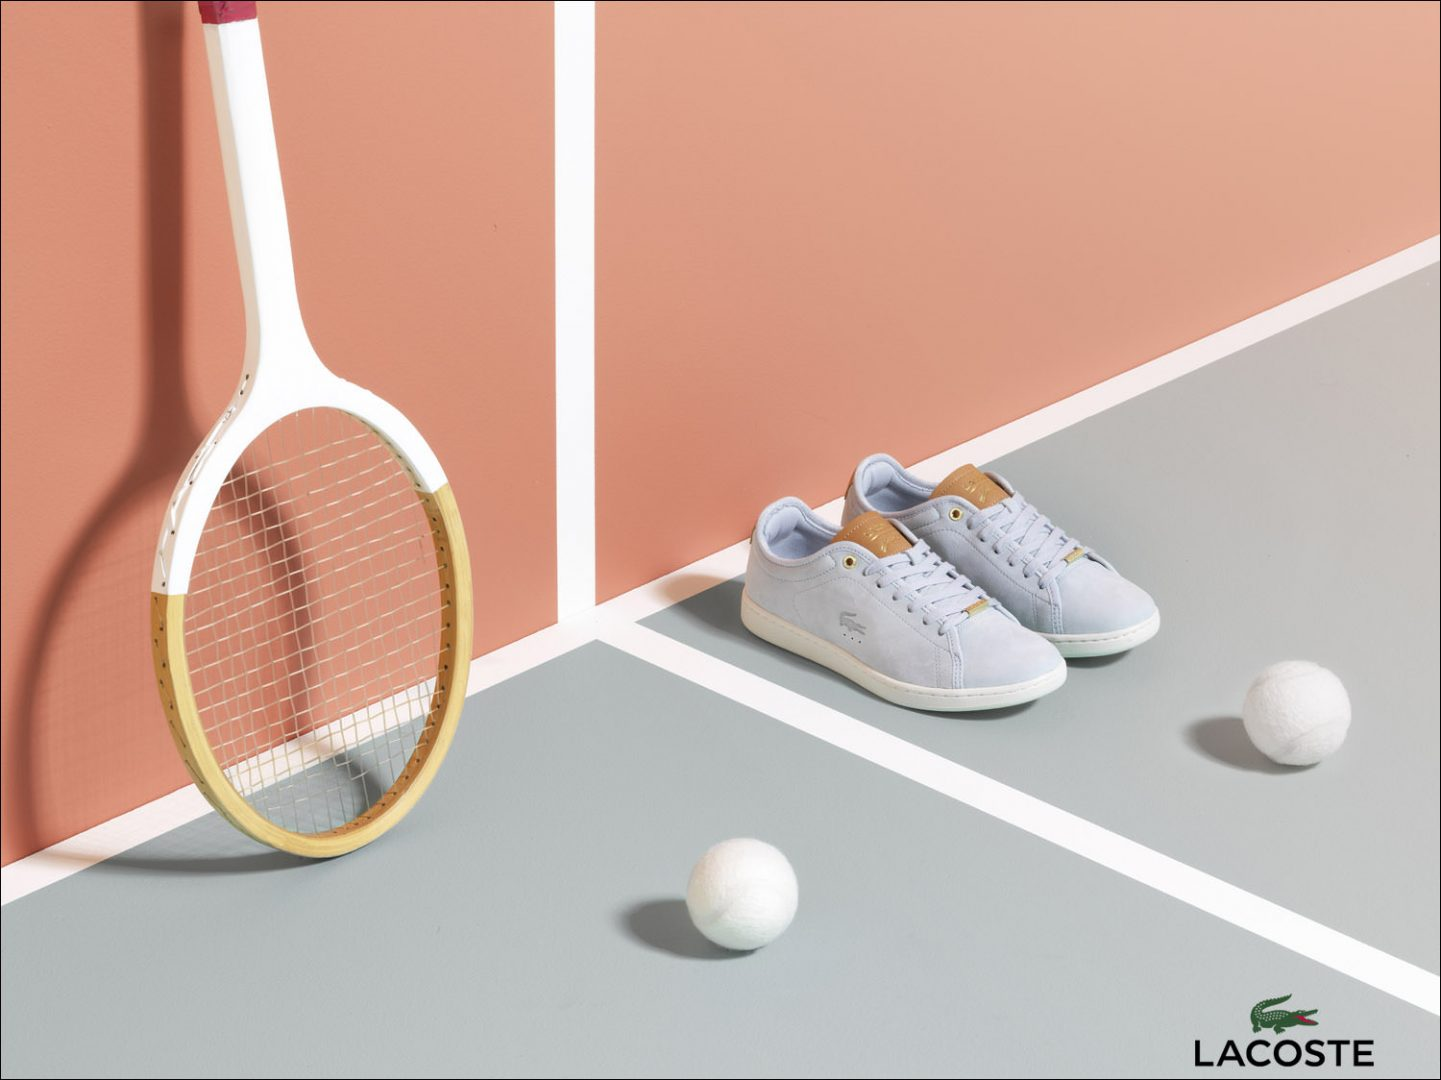 Footwear photography for Lacoste in the studio.